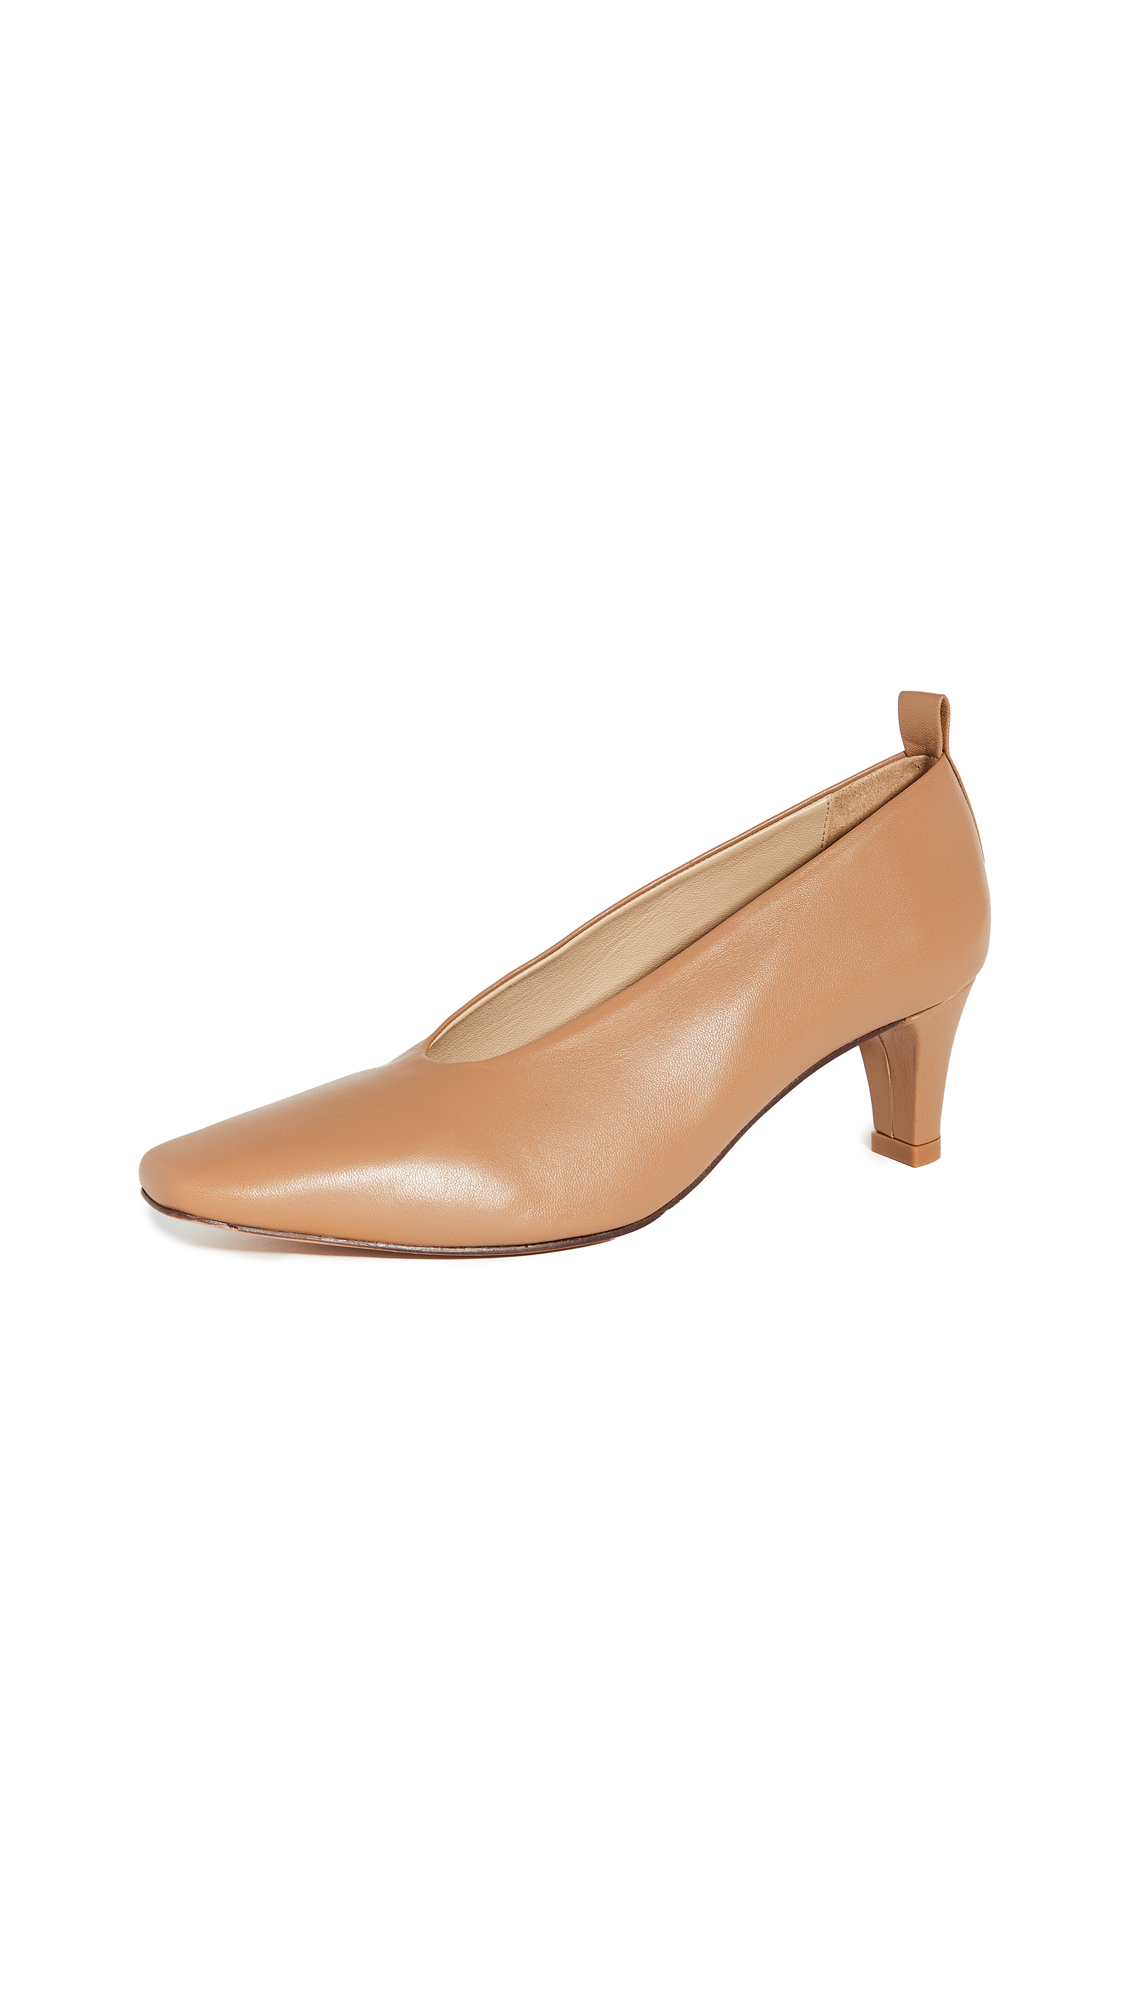 Mari Giudicelli Elizabeth Pumps – 30% Off Sale